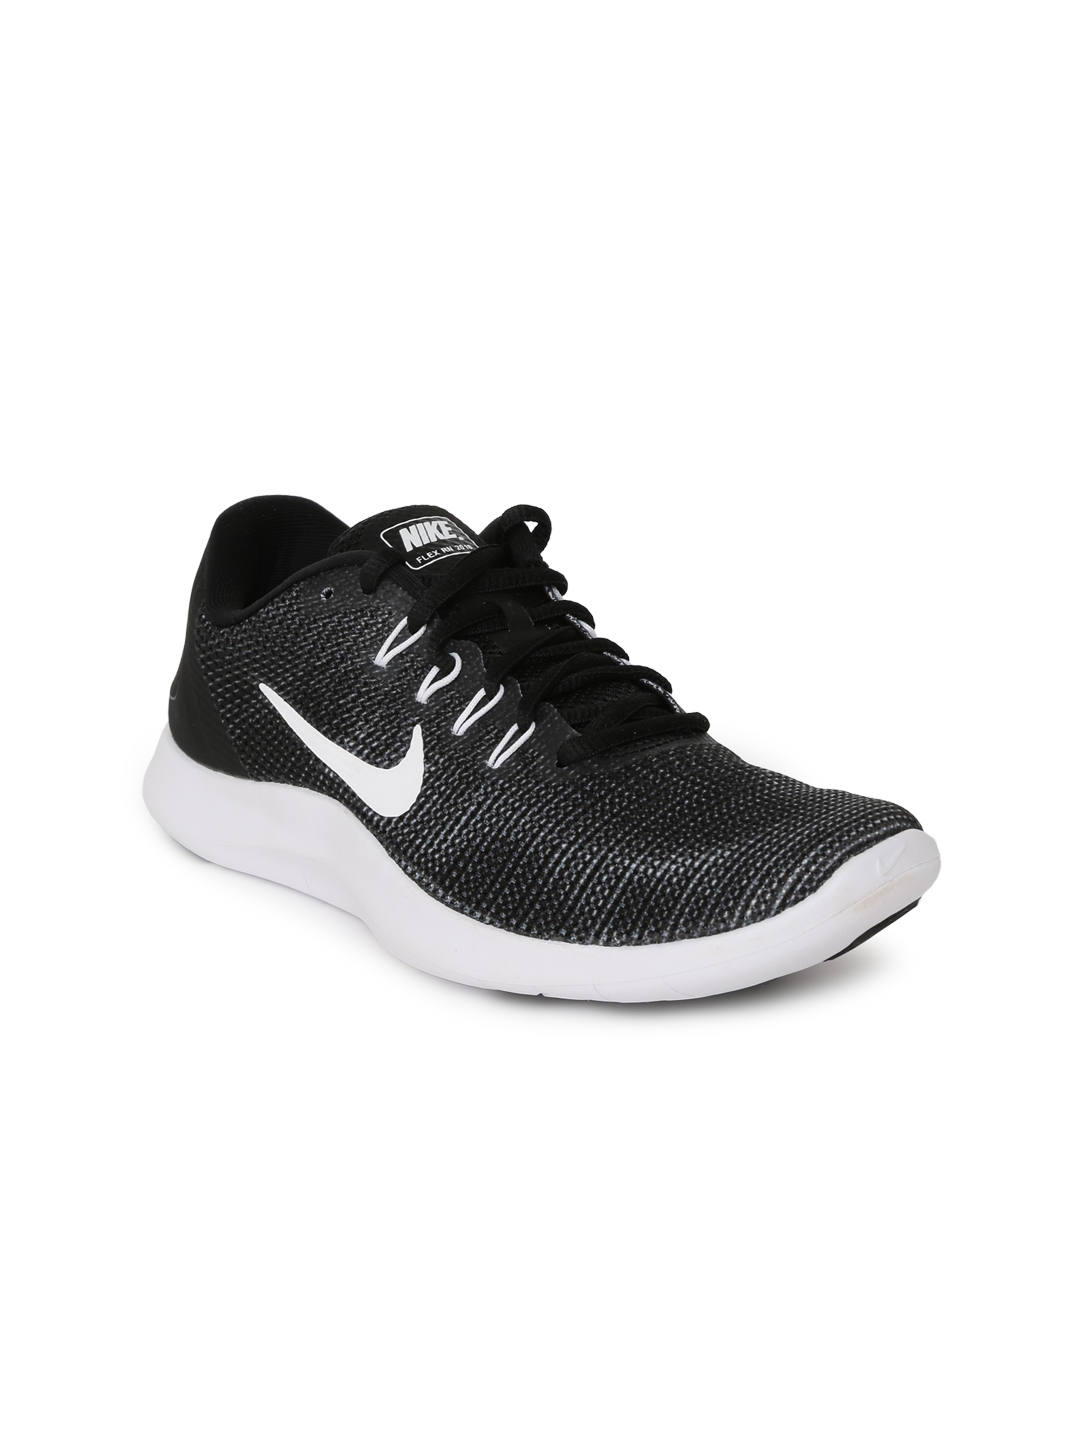 Buy Nike Women Black Flex RN 2018 Running Shoes - Sports Shoes for ... c140f7bee